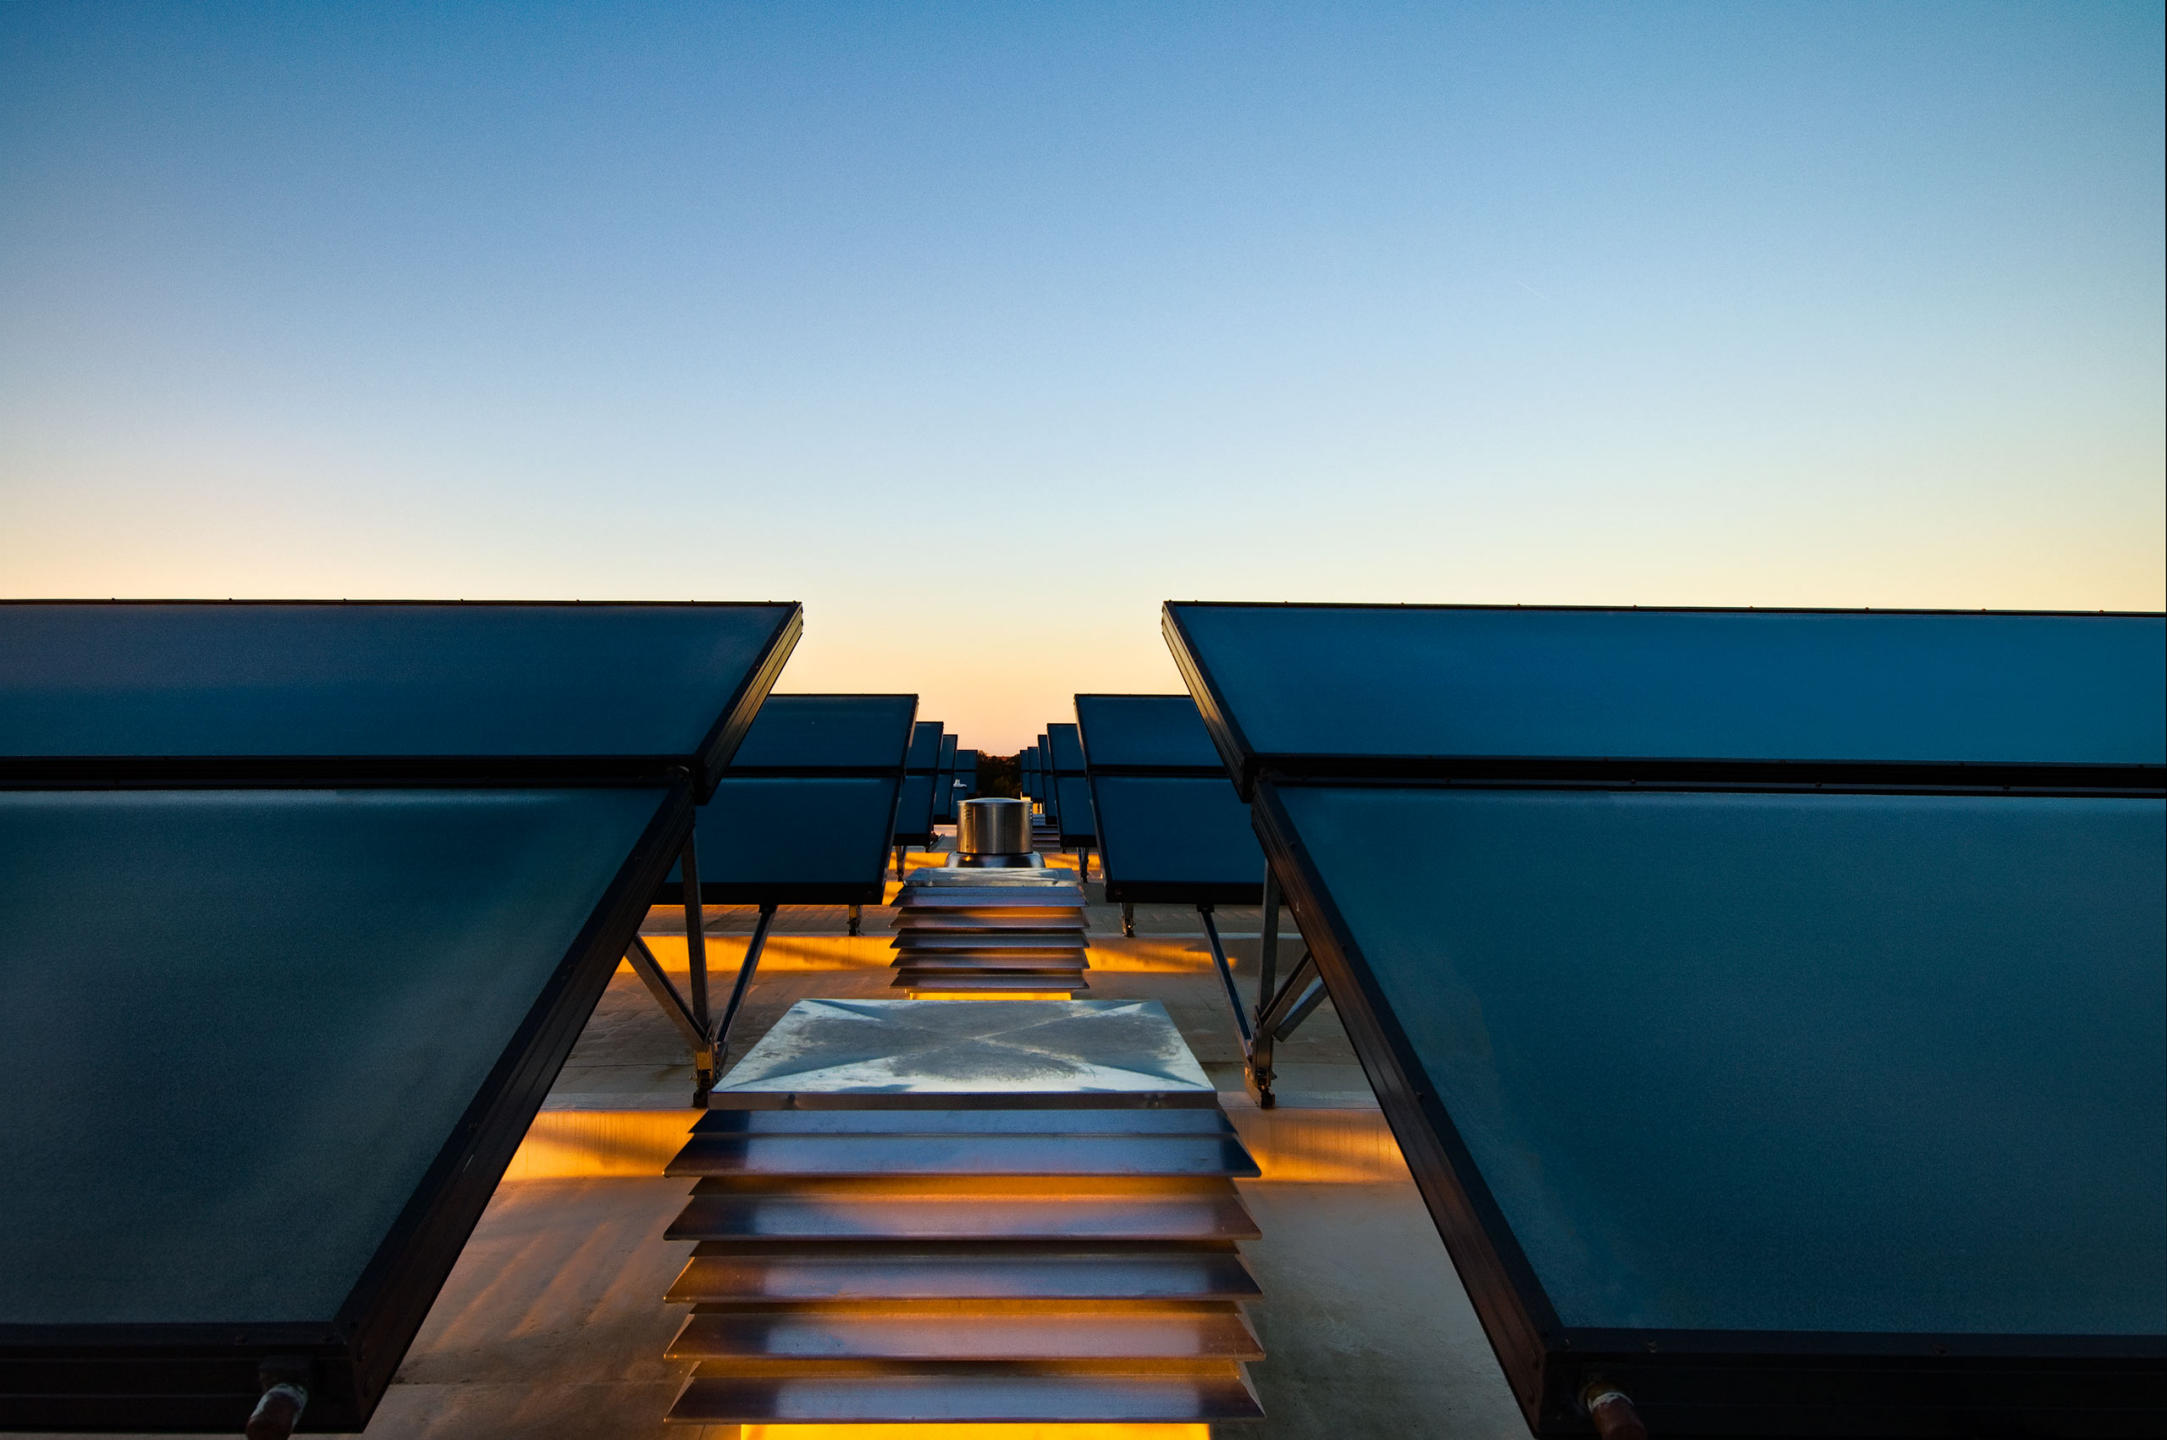 Sunset on the rooftop of the Proximity Hotel a LEED certified hotel utilizing solar panels to supply hot water to the rooms and restaurants. A Green hotel.   : Proximity Hotel : New York NY Architectural Photographer | Interior and Exterior